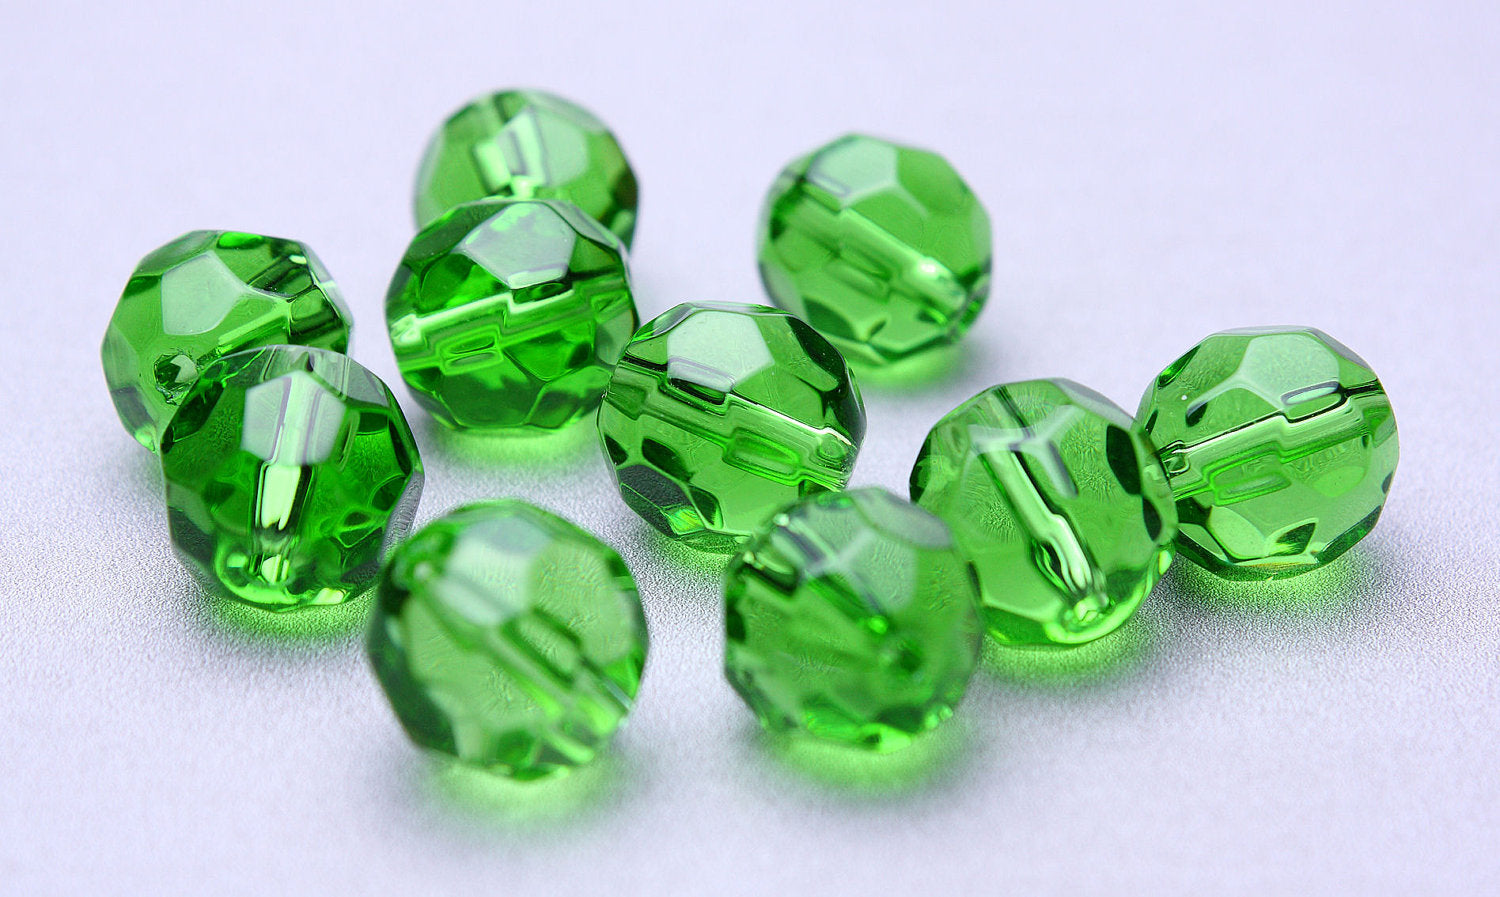 10mm green round fire polished glass beads - faceted glass beads - Czech glass beads - 10 pieces (479)